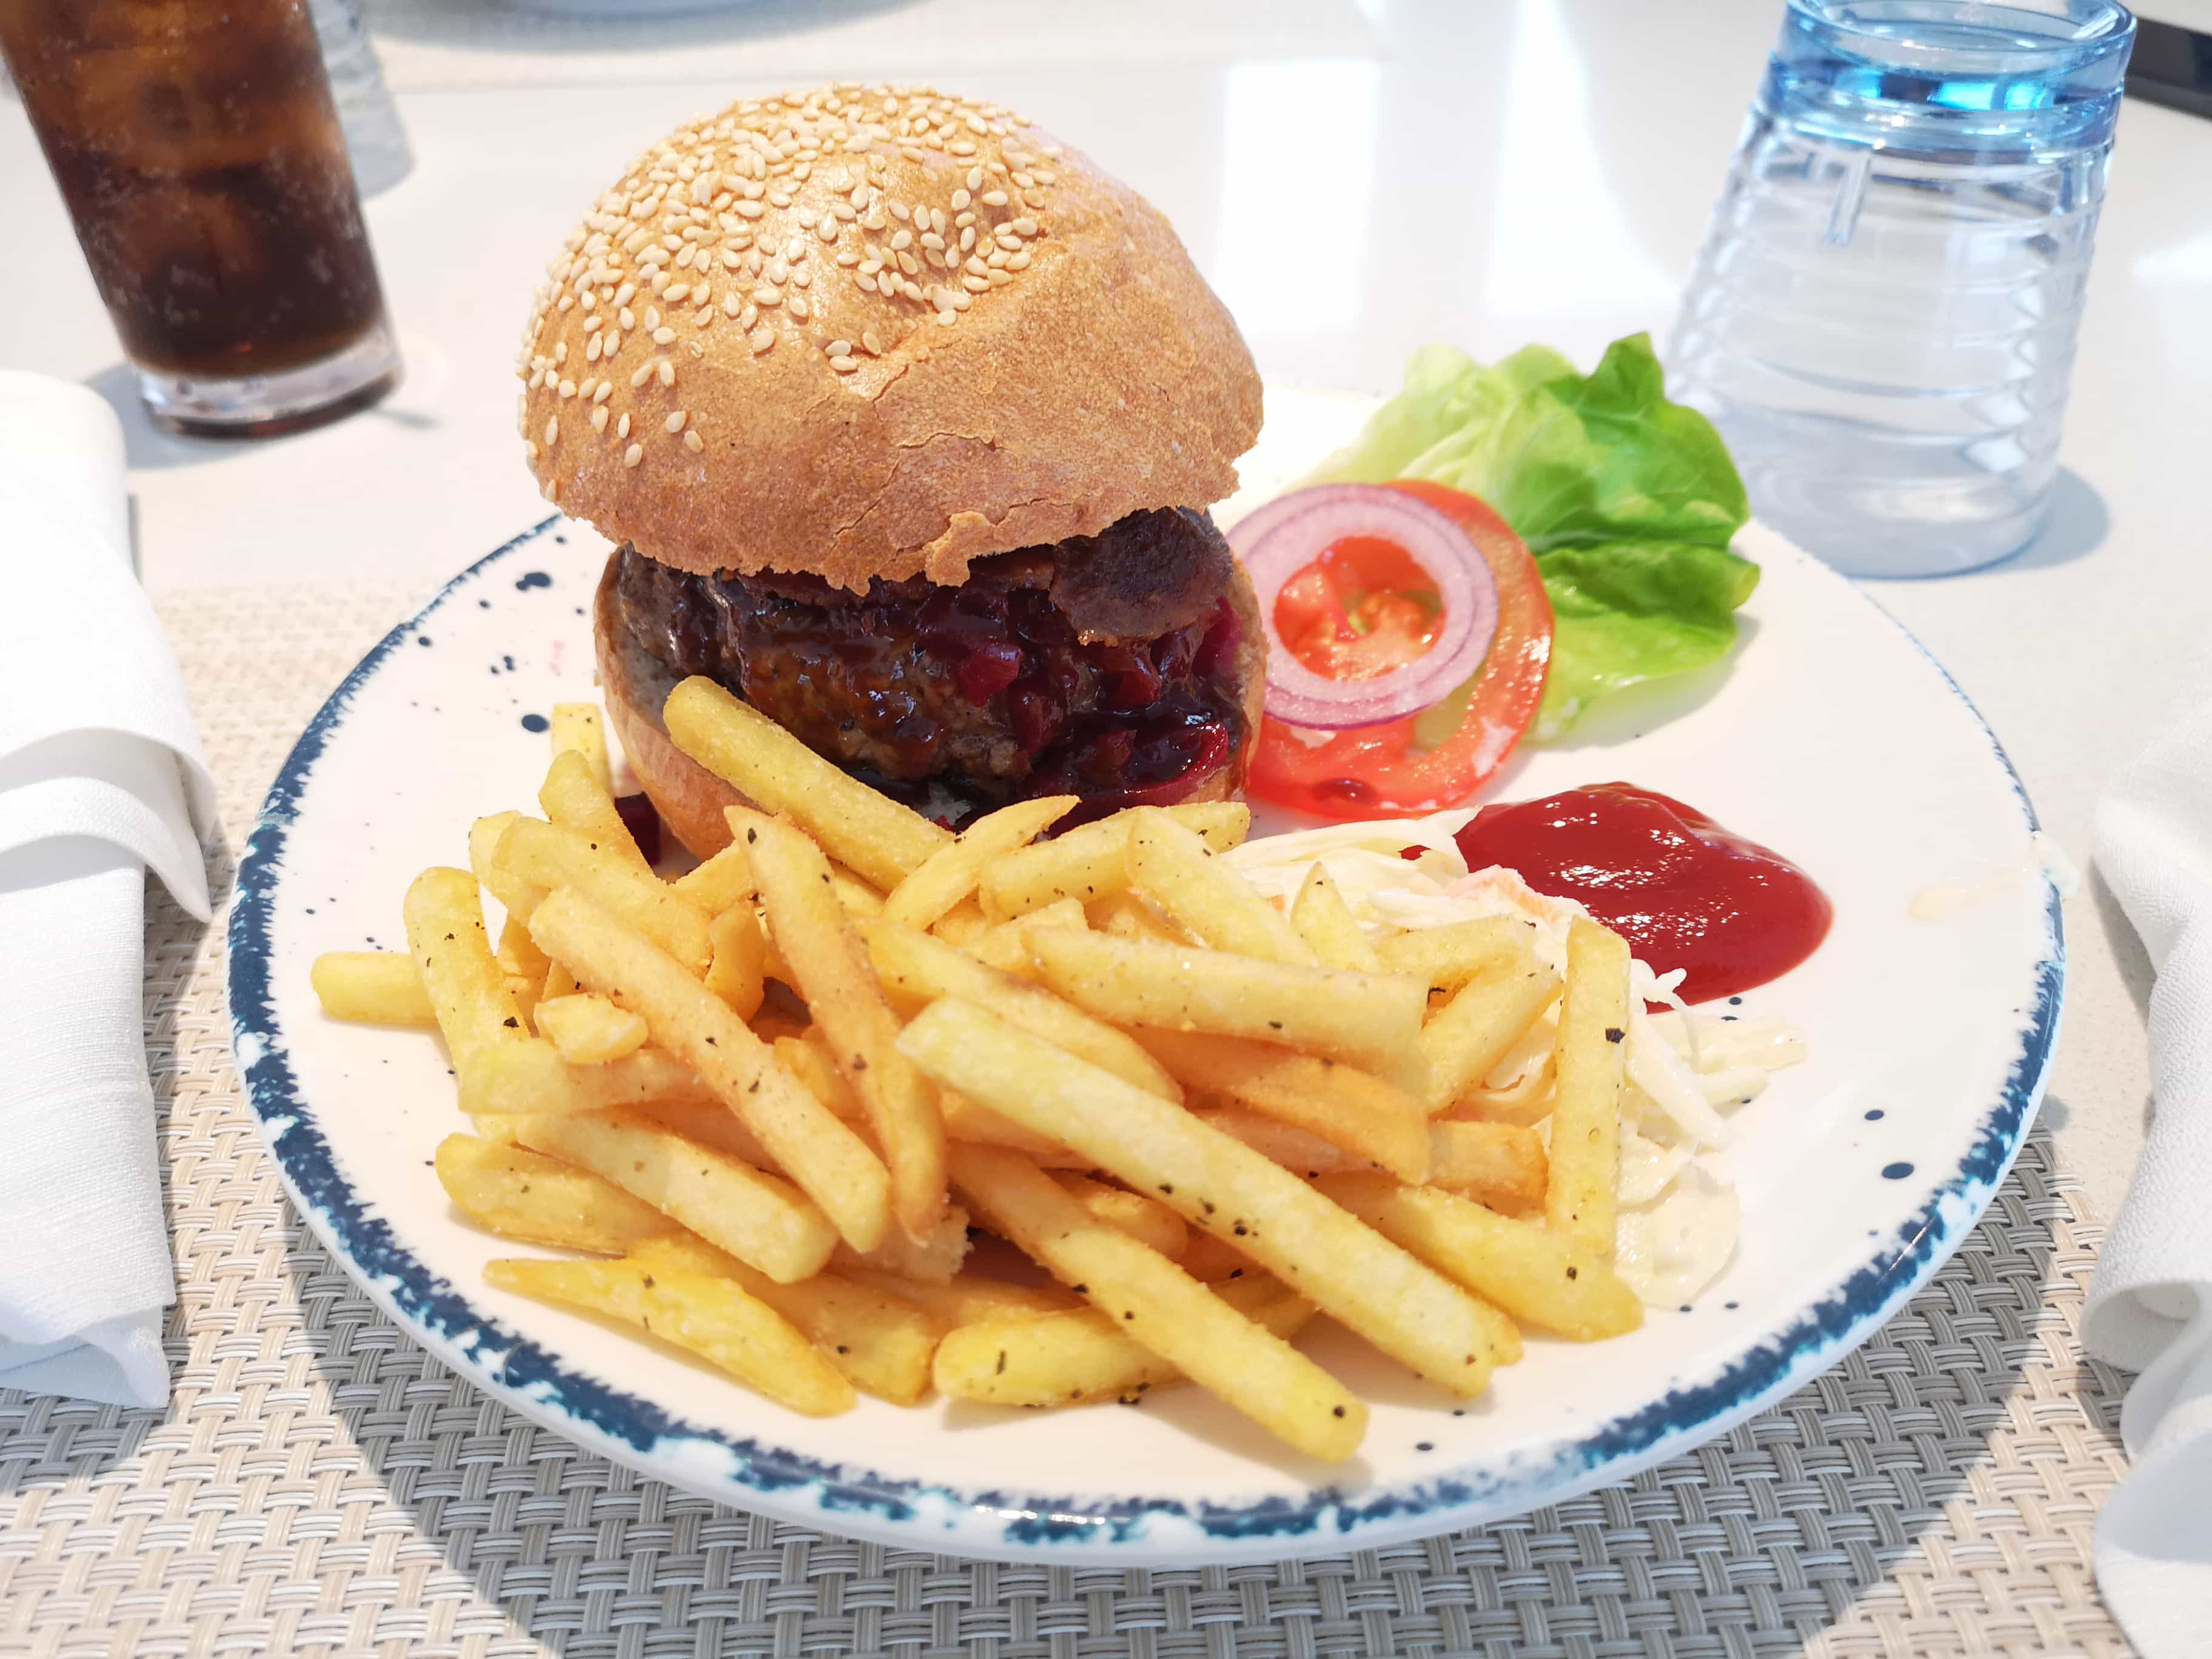 Viking Sea Cruises Pool Grill Food Burger Chips Coleslaw